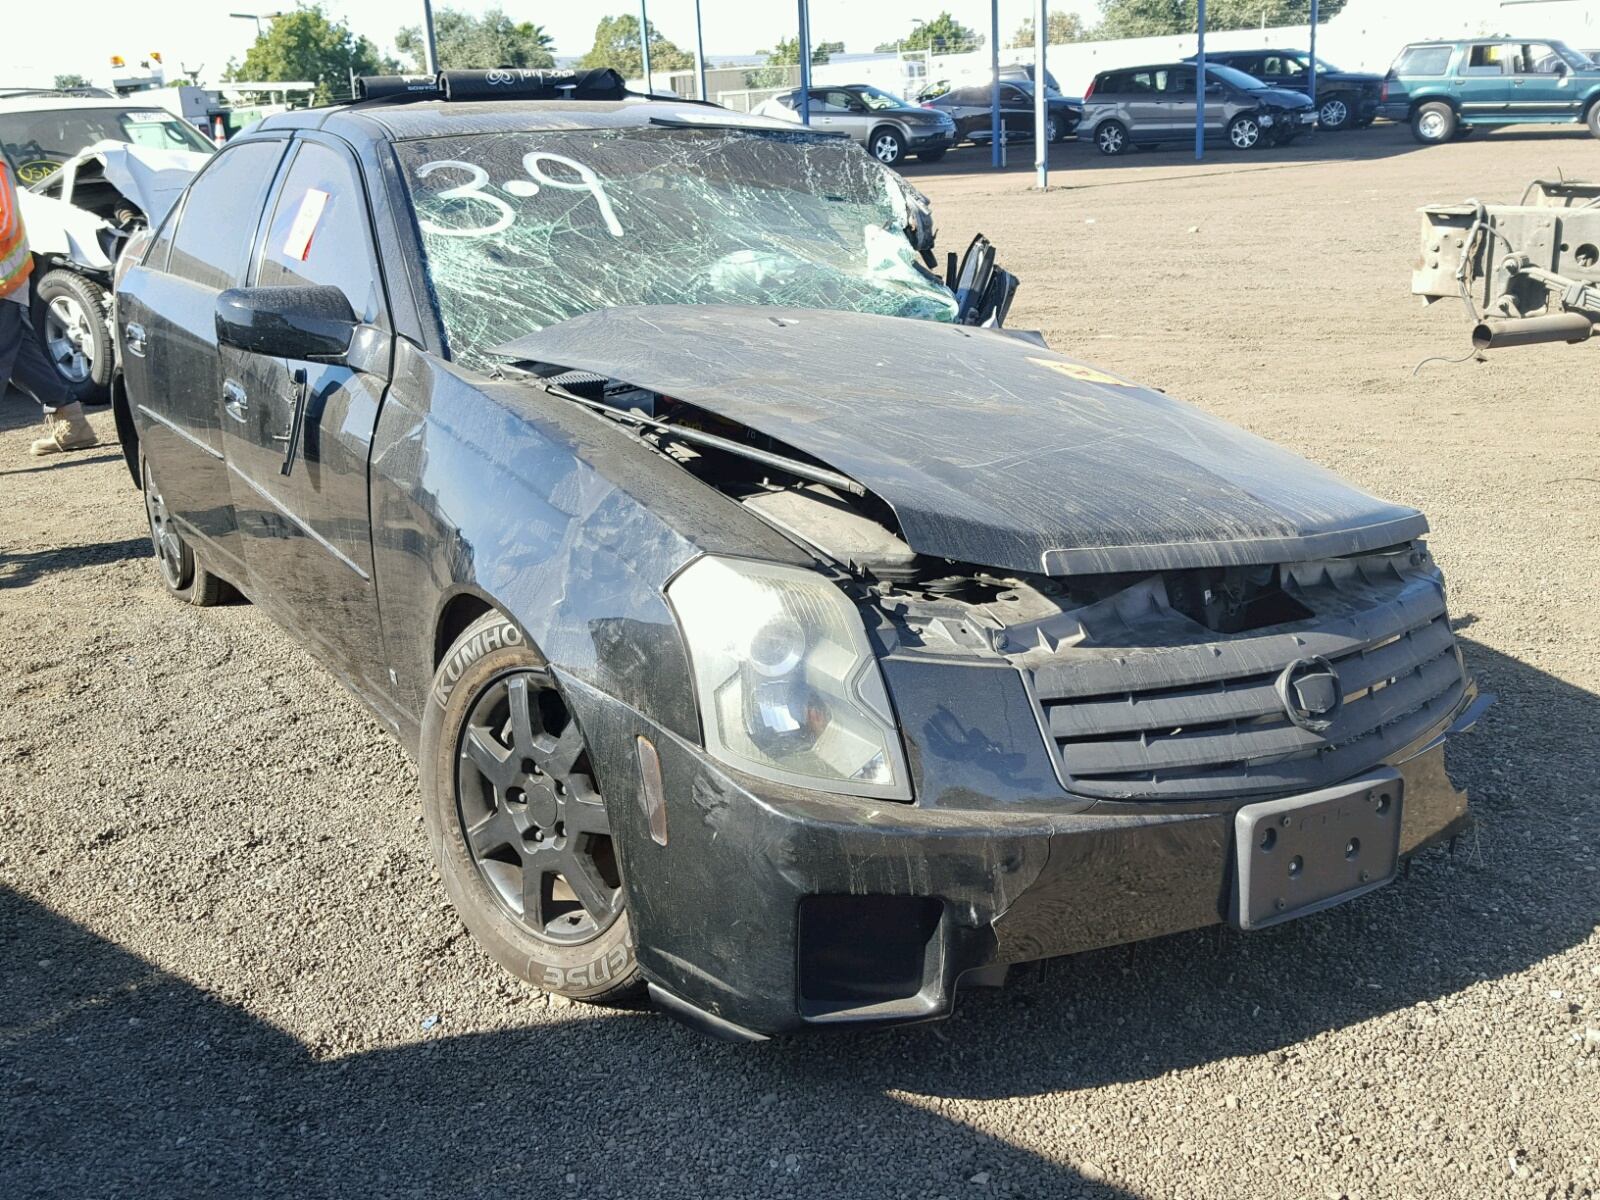 inventory cadillac used available ga freddie s sale for image fort cts no cars view